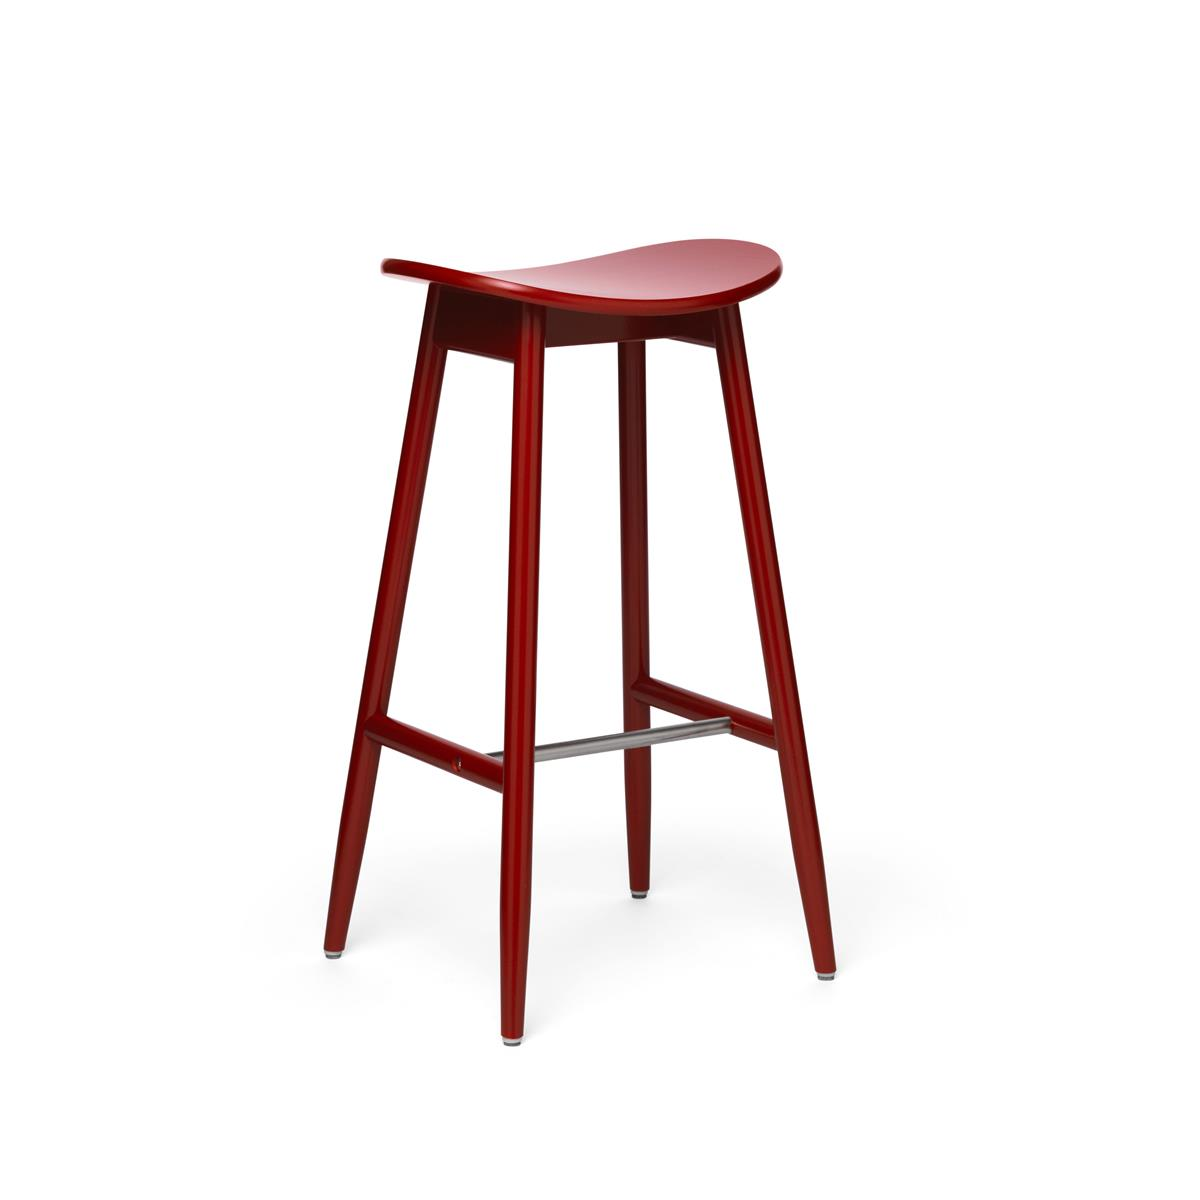 Icha Bar Stool - Red Lacquered